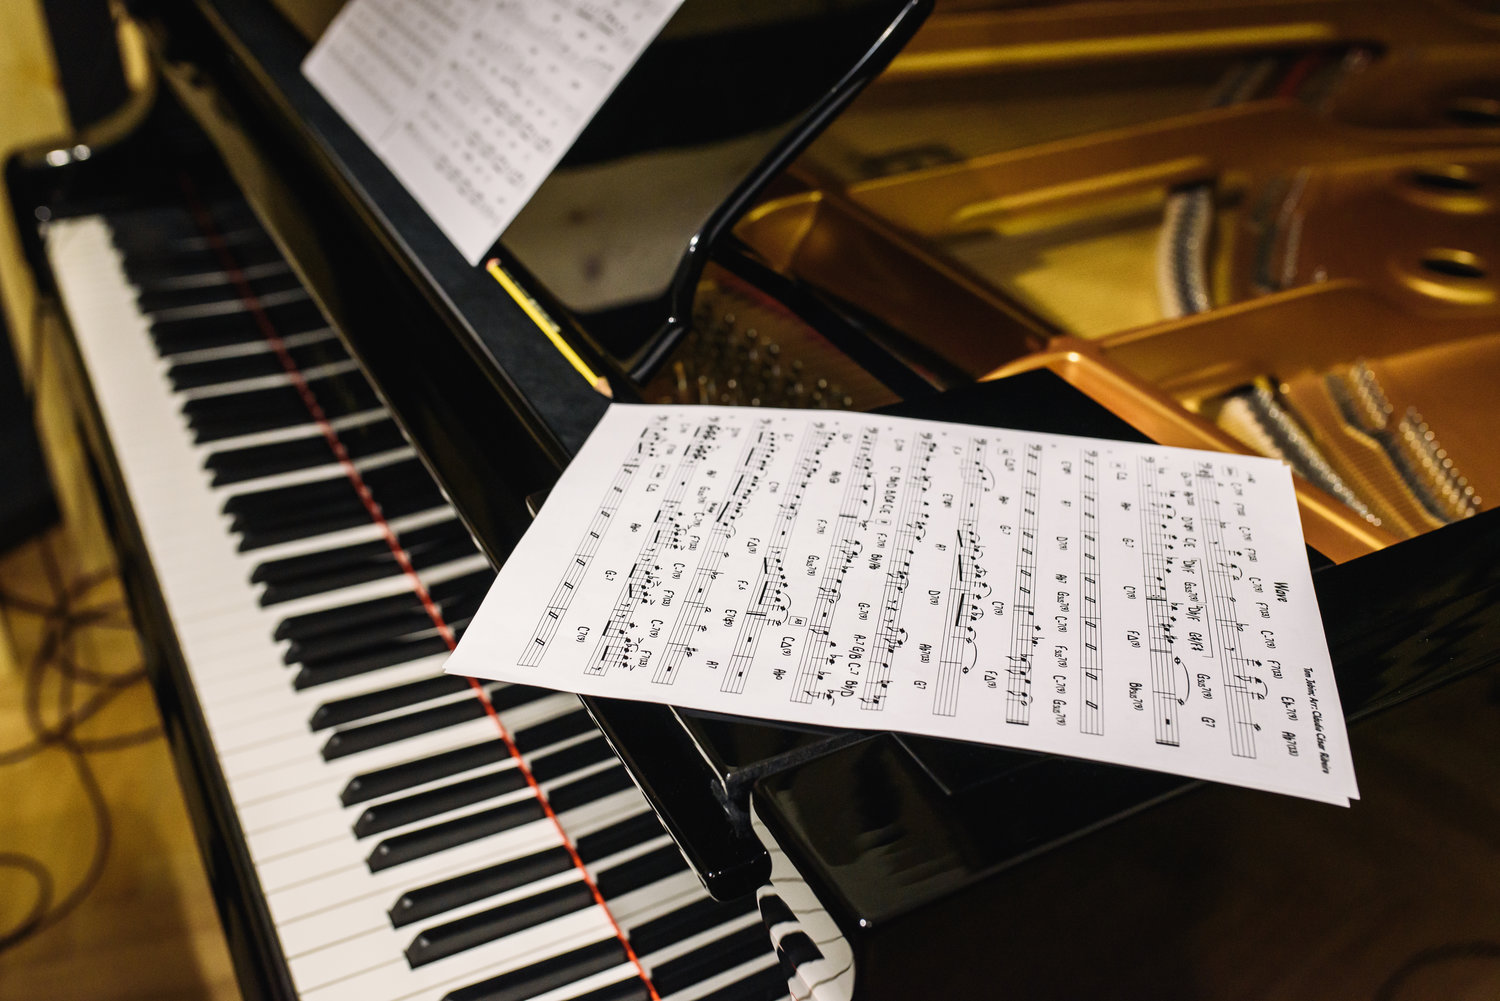 Let's talk a little about music theory. — Truly Musical